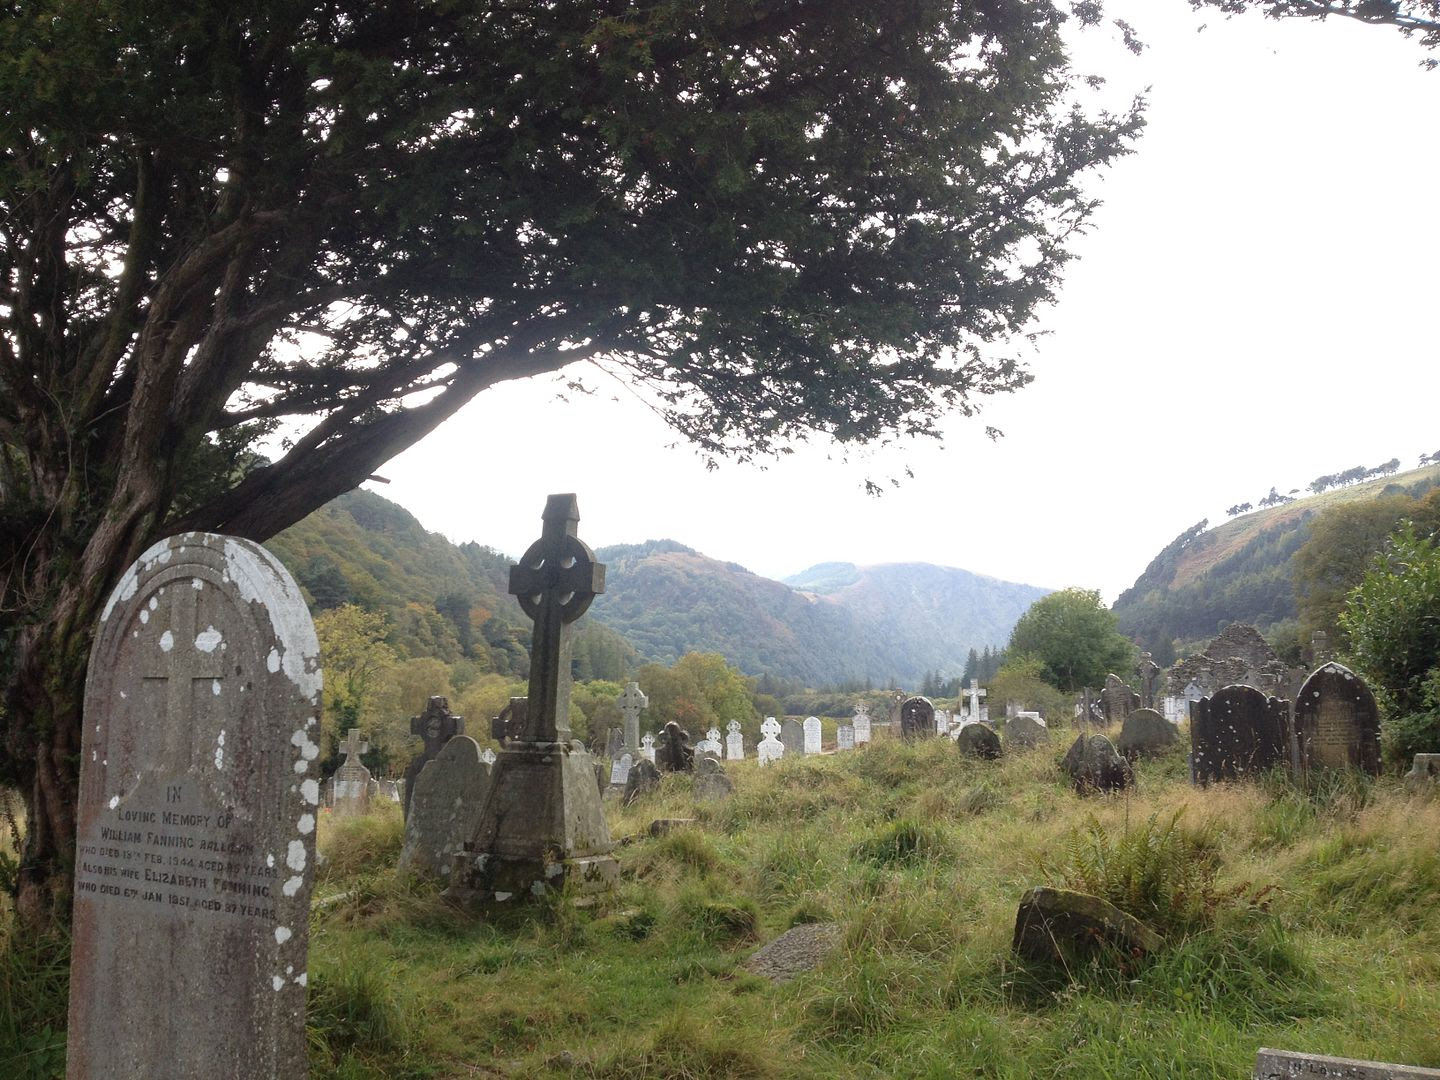 Glendalough, Ireland photo 2015-10-16 13.59.53_zpskhkno0xs.jpg